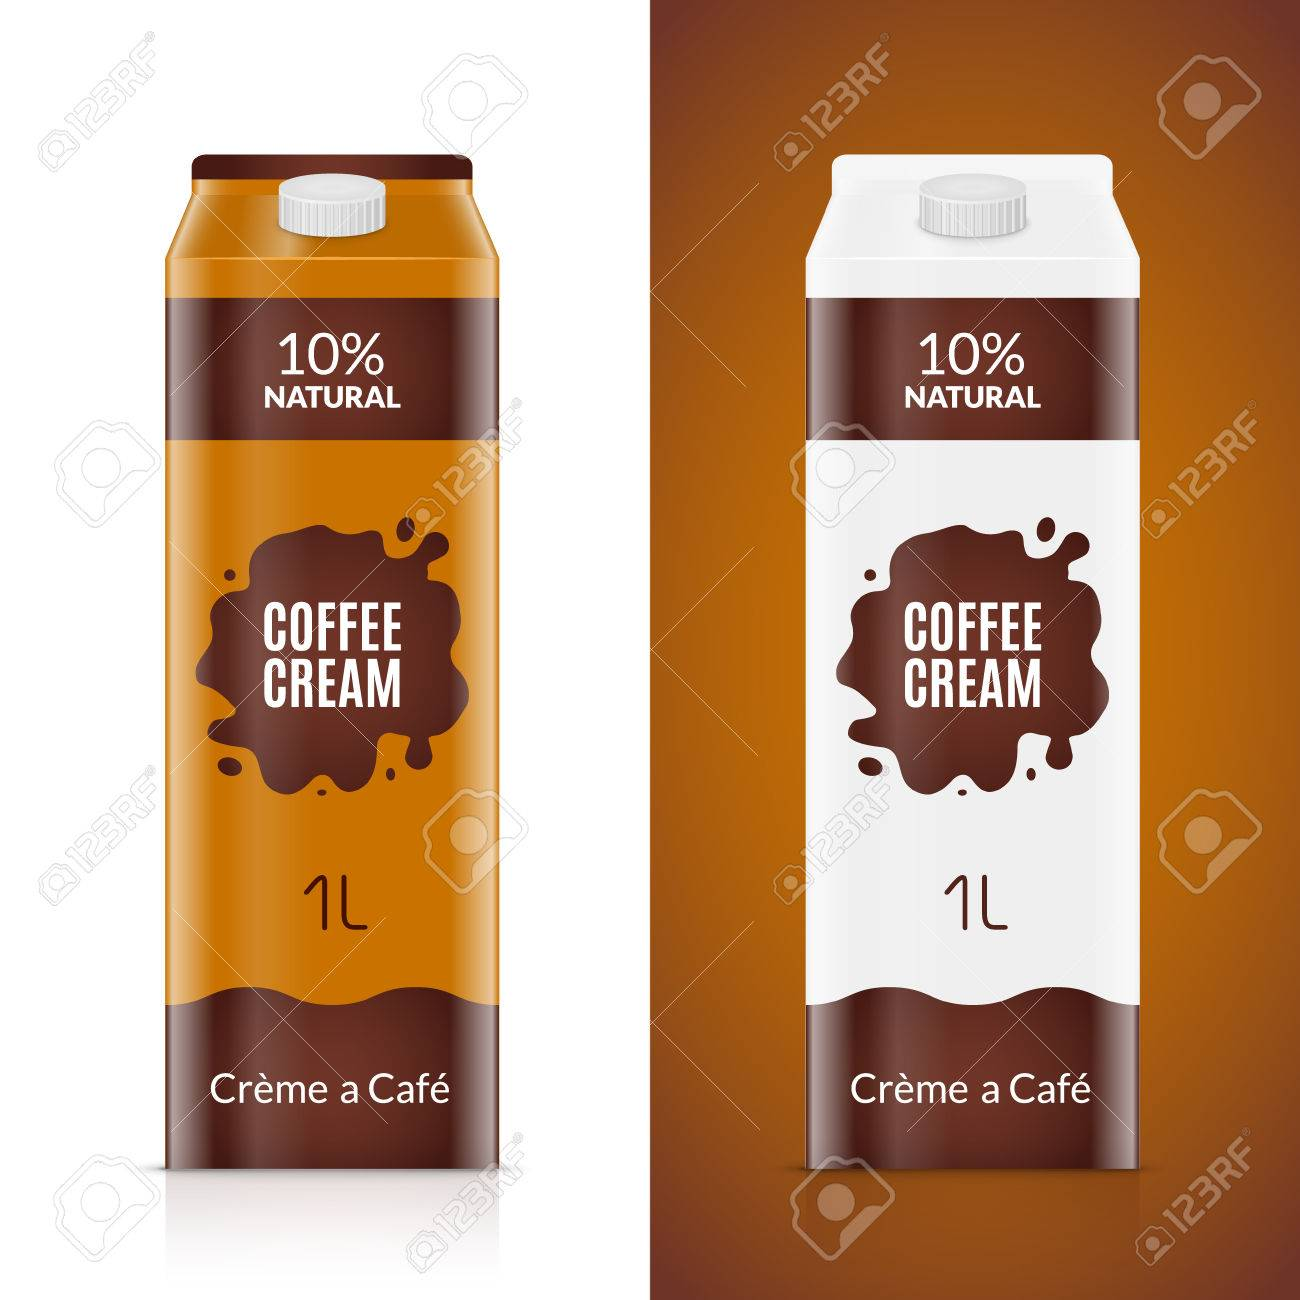 coffee cream packaging design template cream product package